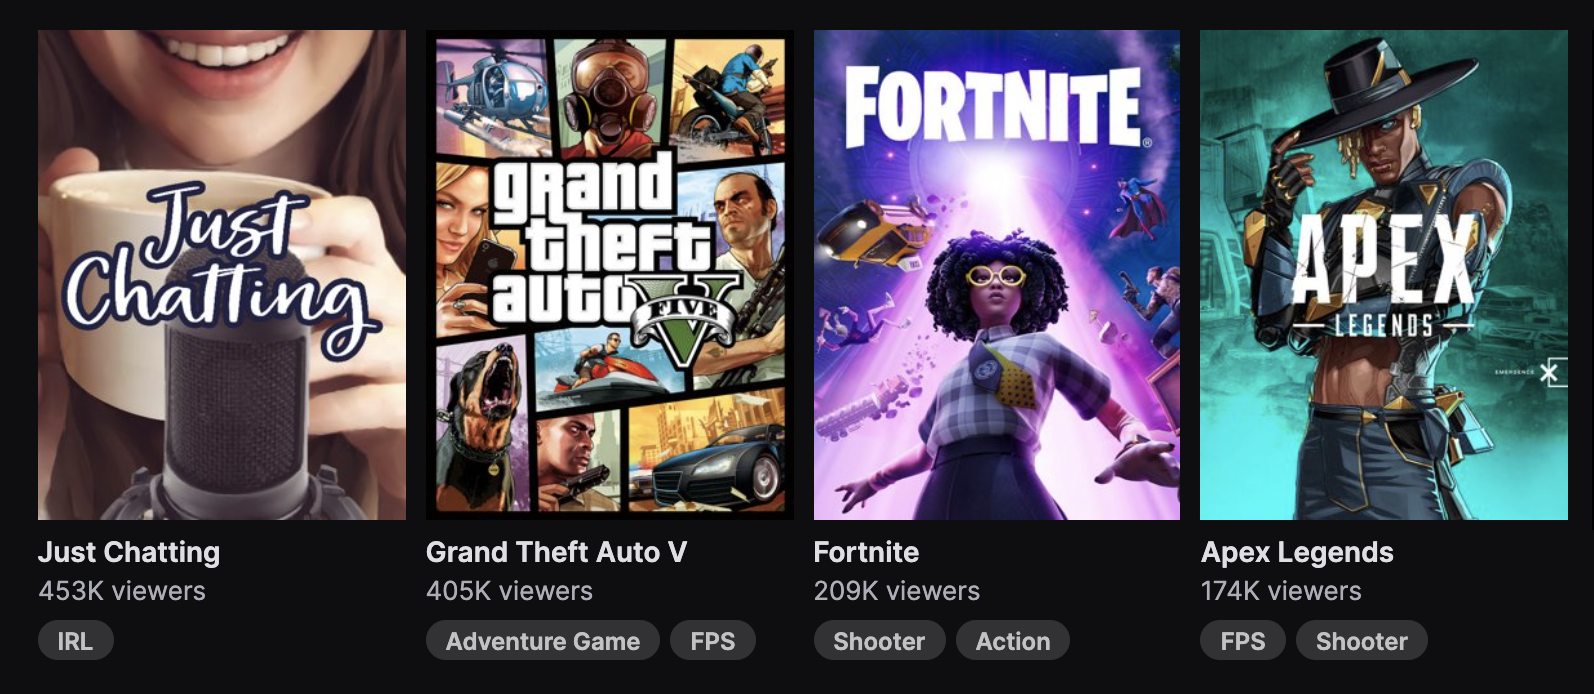 Four examples of popular category cards on Twitch: Just Chatting, Grand Theft Auto V, Fortnite, and Apex Legends.